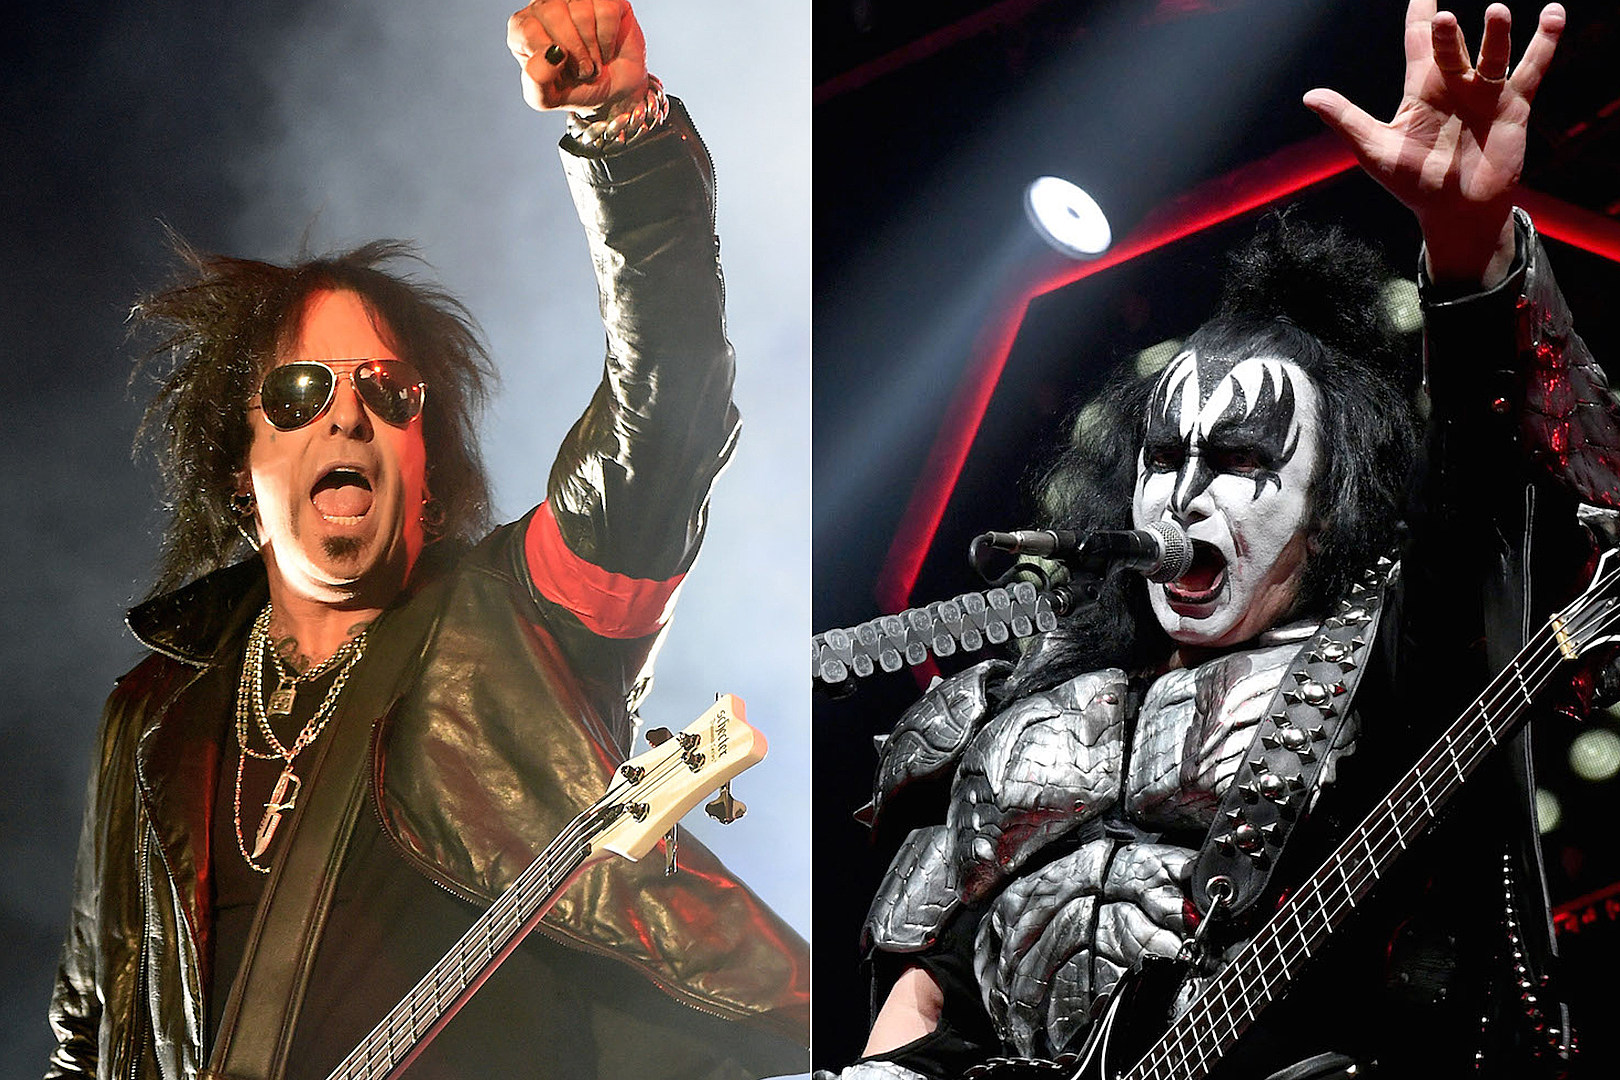 Nikki Sixx Slams KISS For Stealing From Motley Crue's Tour Finale